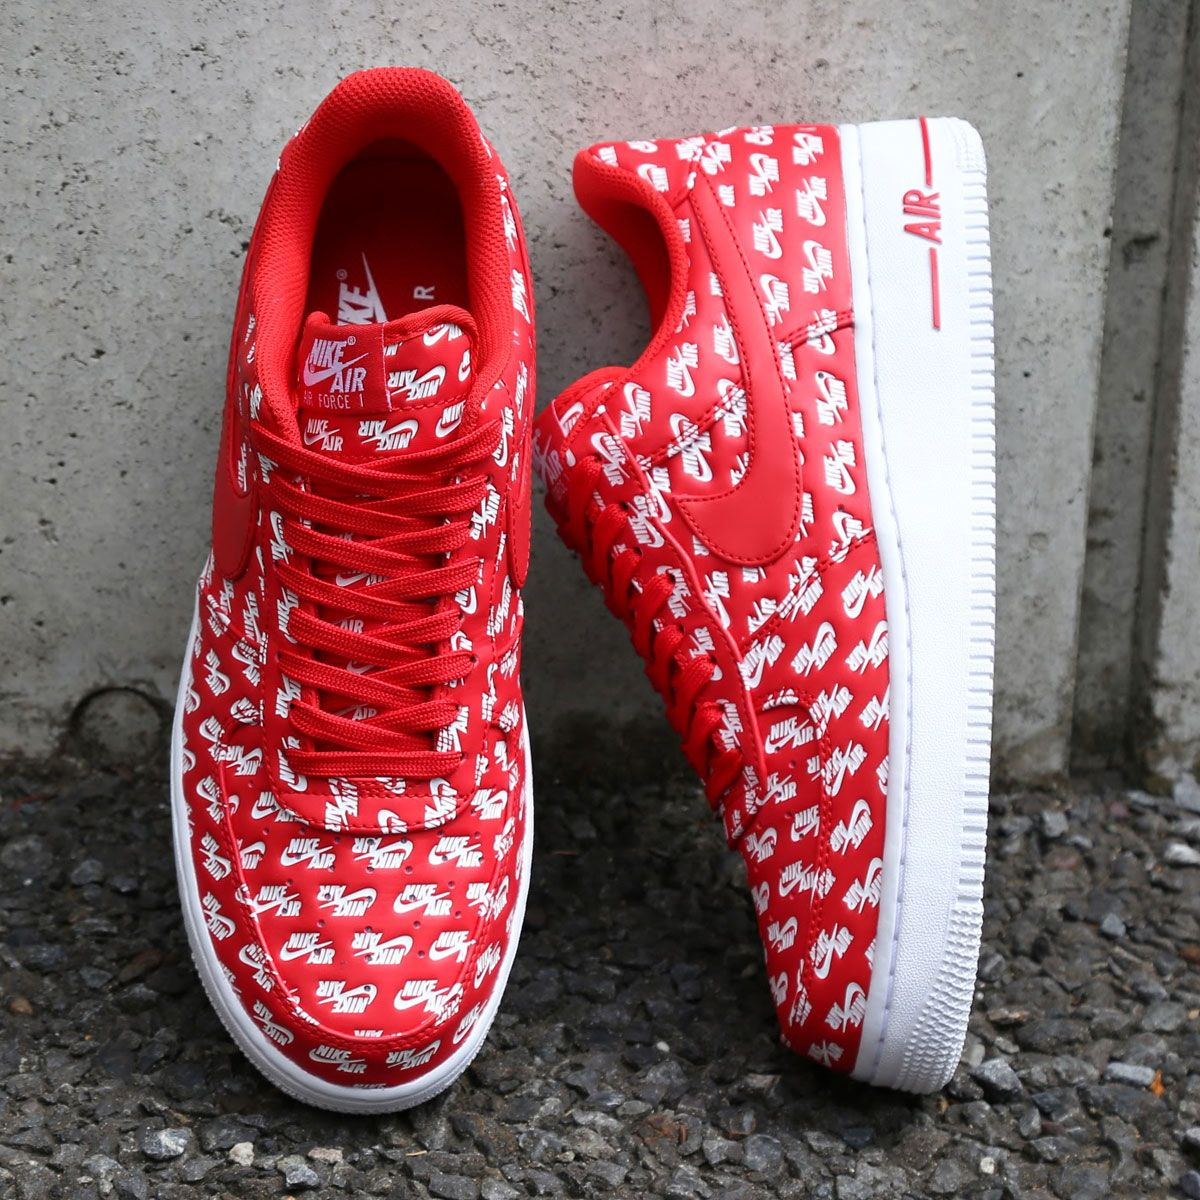 NIKE AIR FORCE 1 07 QS ALL OVER LOGO UNIVERSITY RED AH8462